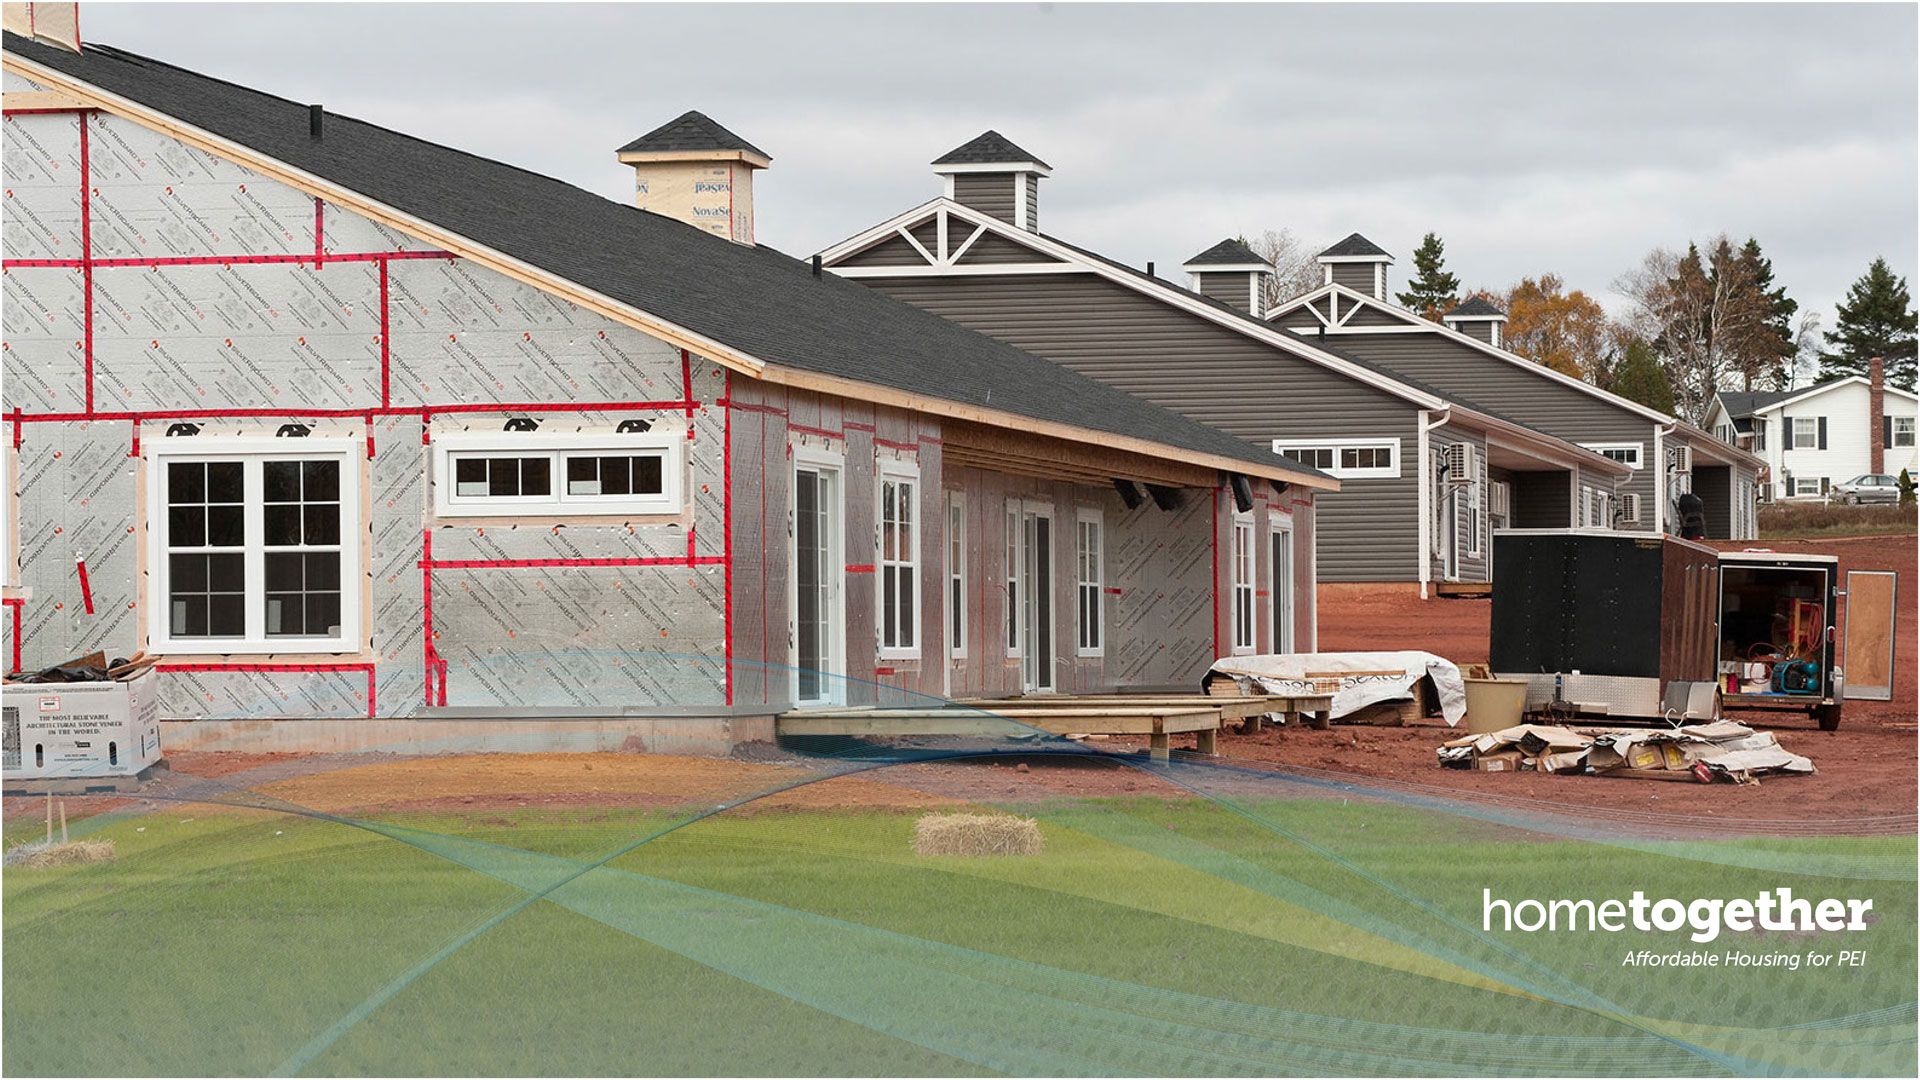 Image of home under construction on PEI, Home Together PEI